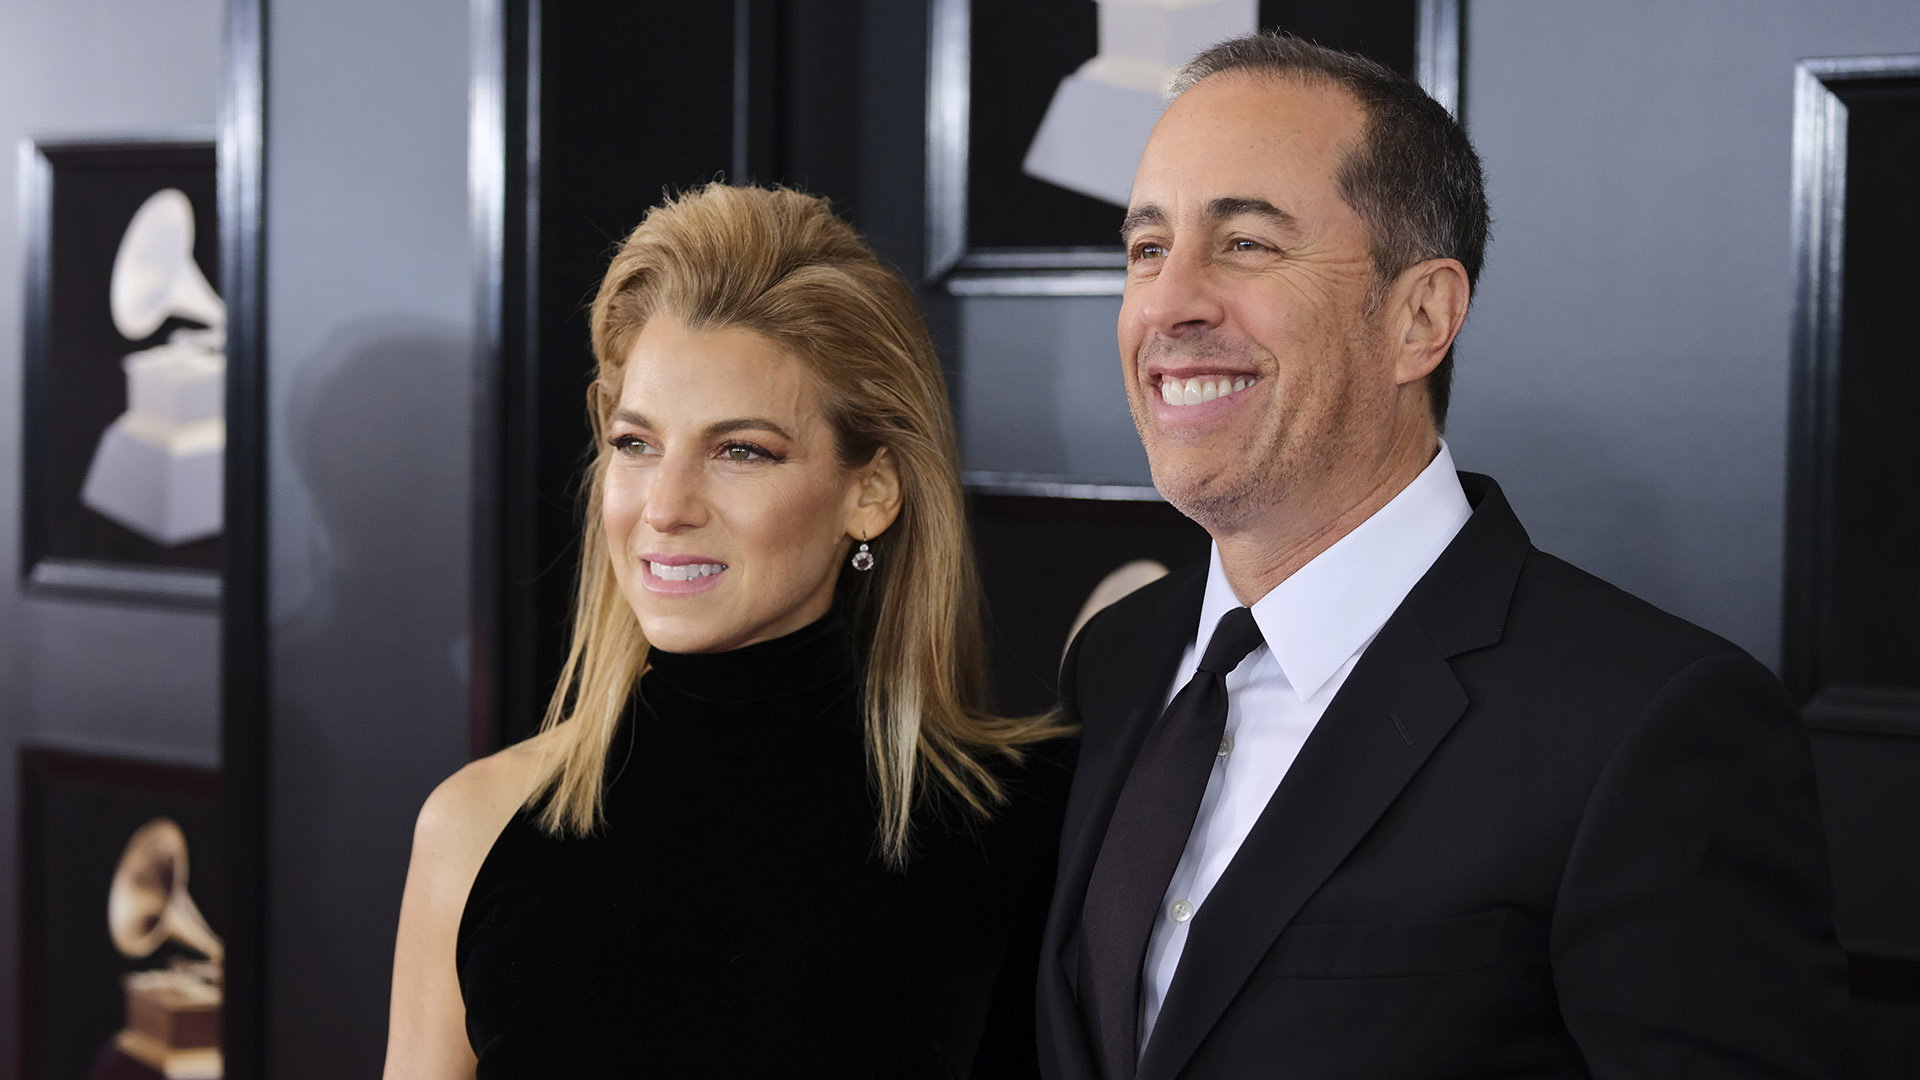 Jerry Seinfeld and wife Jessica can't stop smiling on the 60th Annual GRAMMY Awards red carpet.